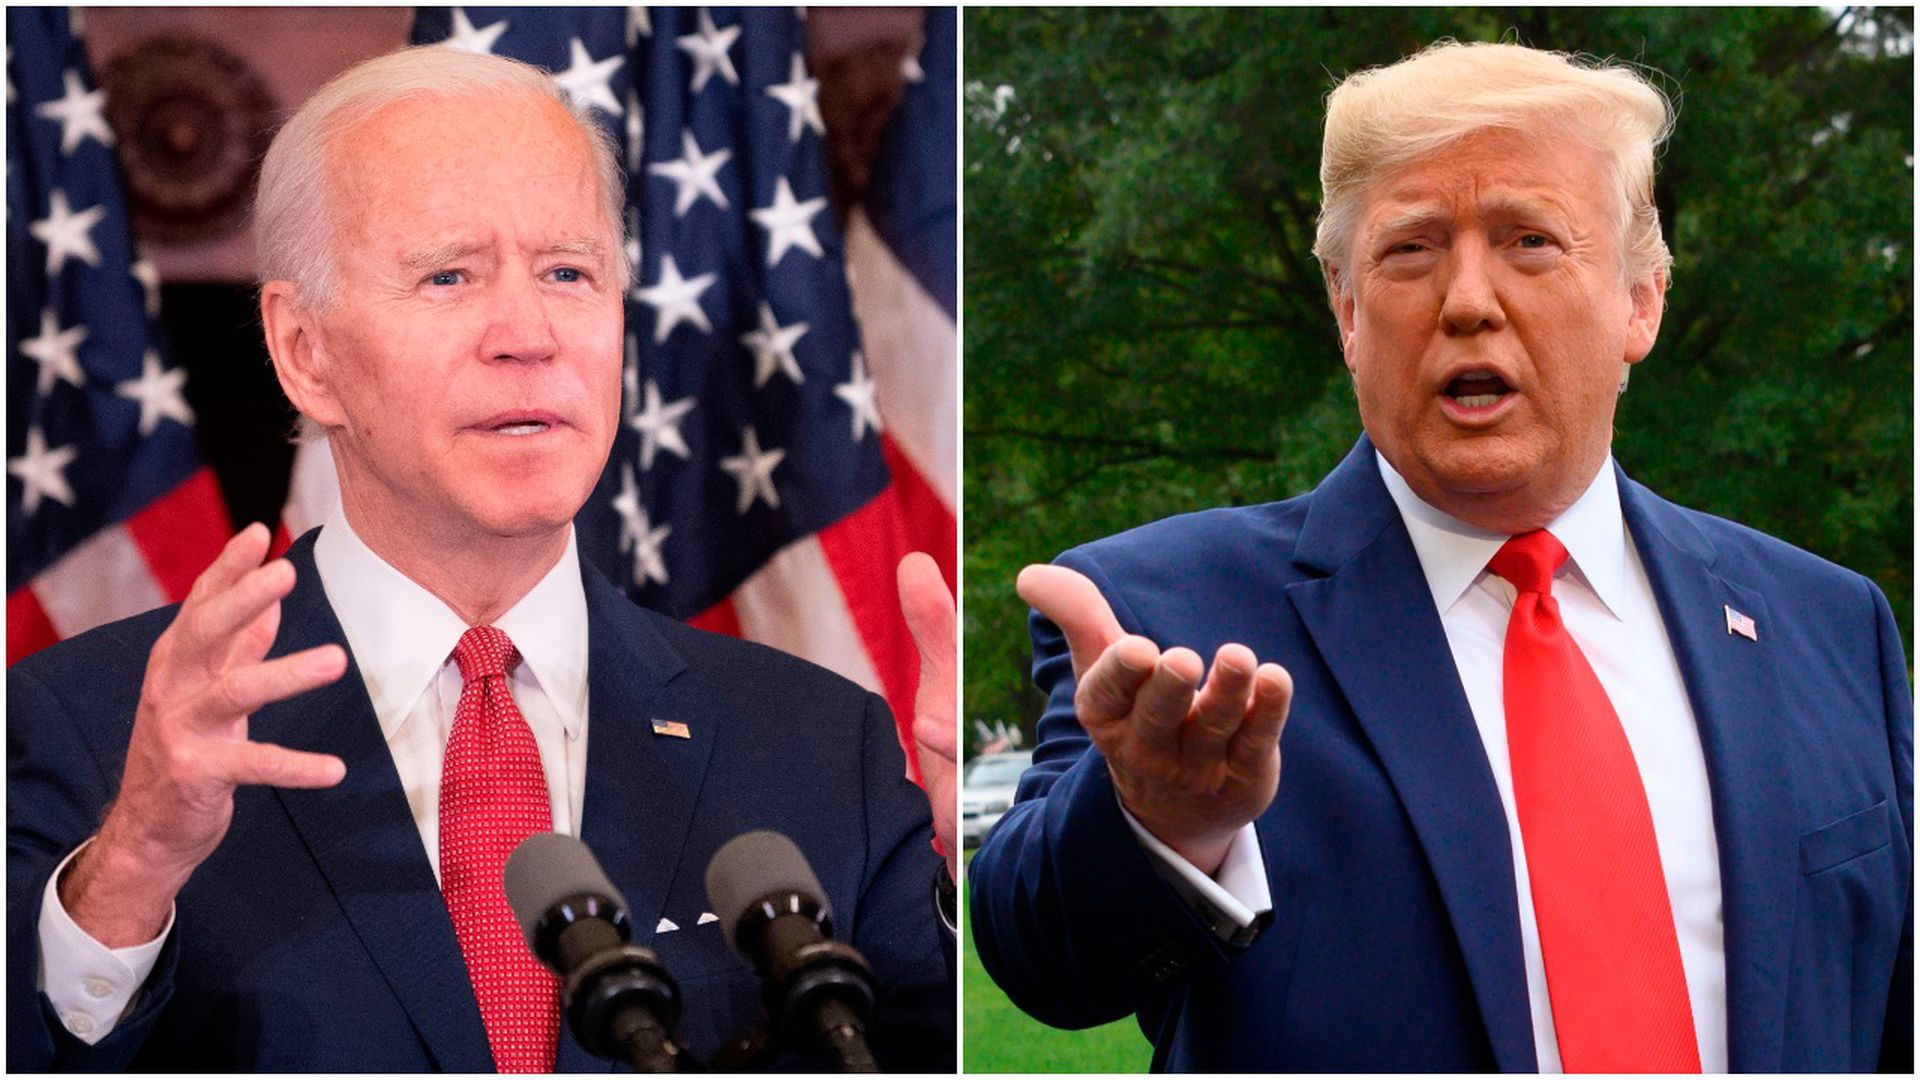 Biden commits to 3 debates with Trump - Axios